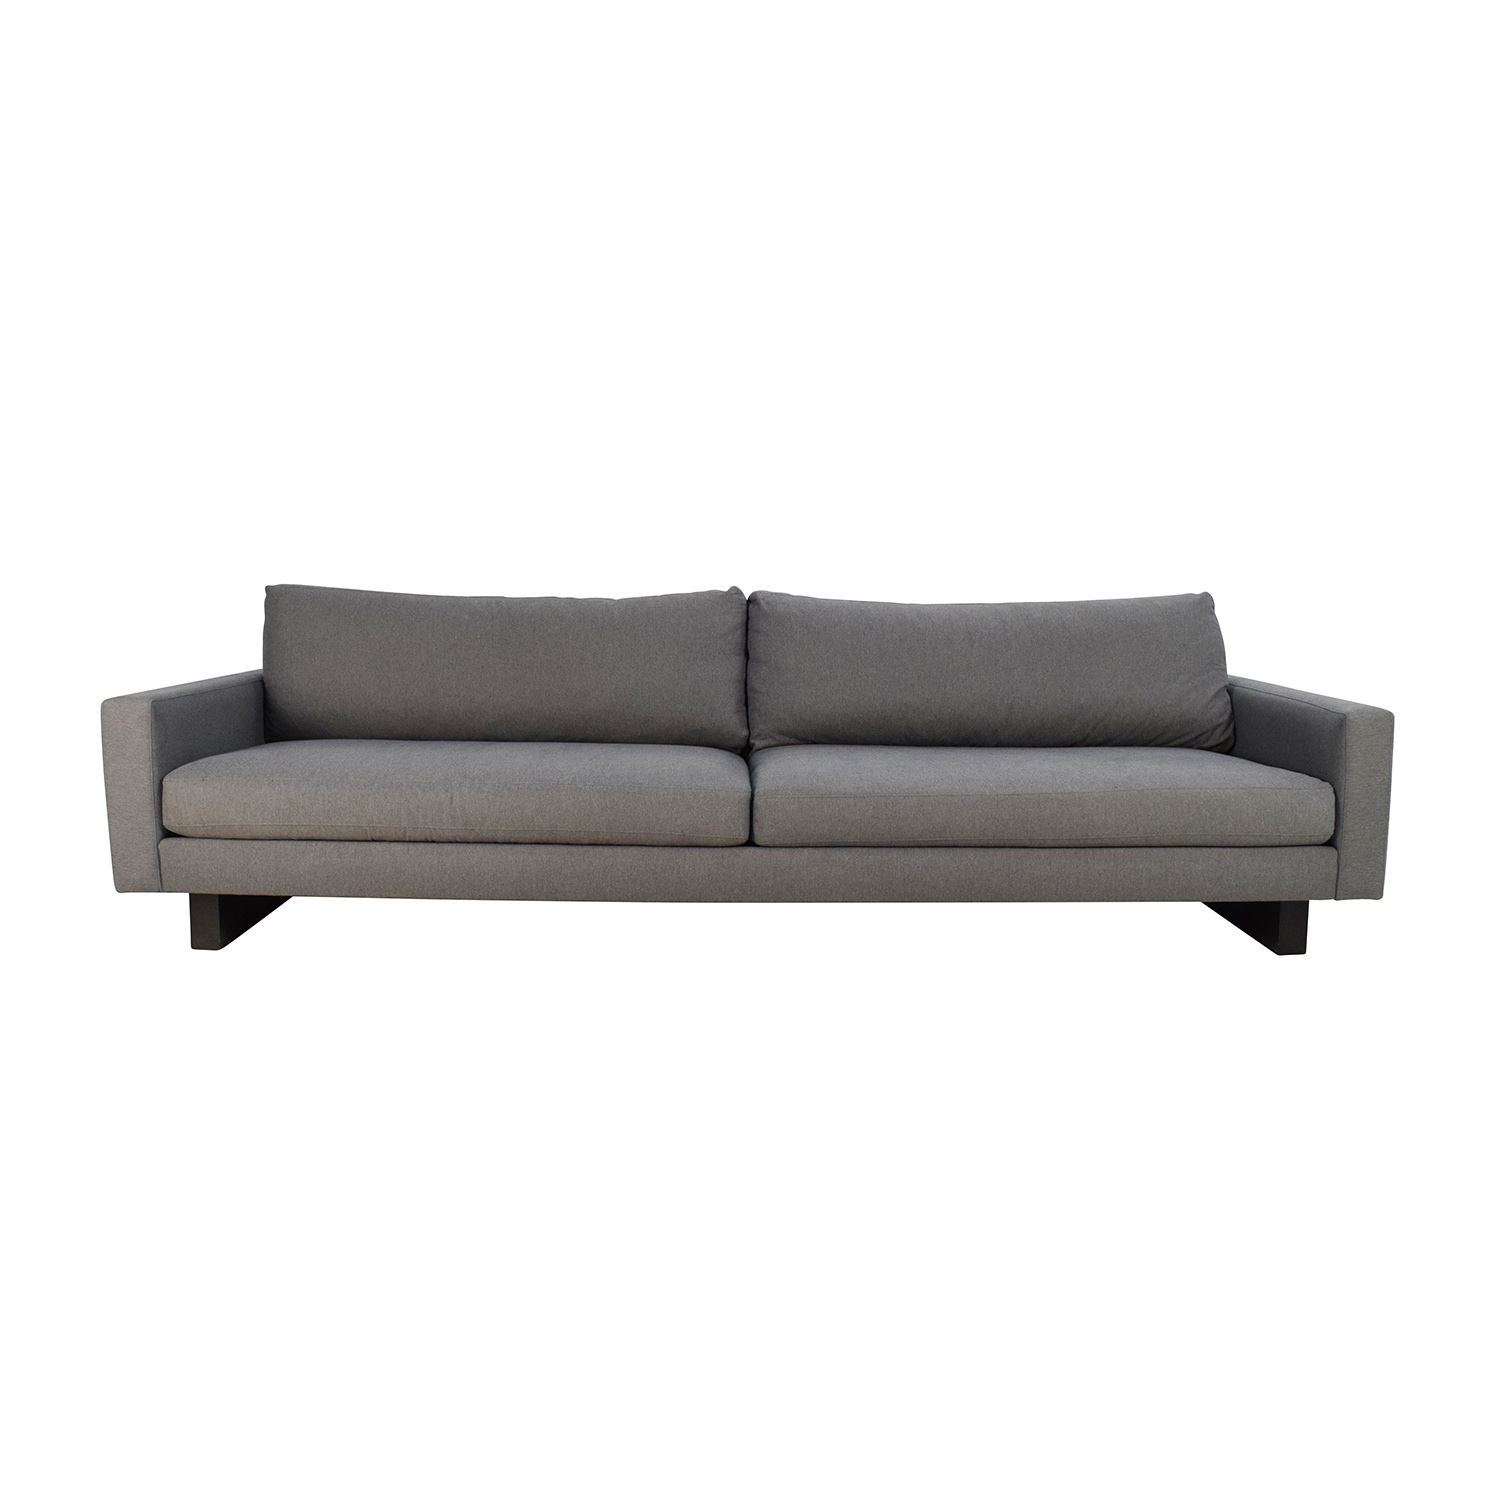 room and board hess sofa review professional cleaners dubai 79 off restoration hardware